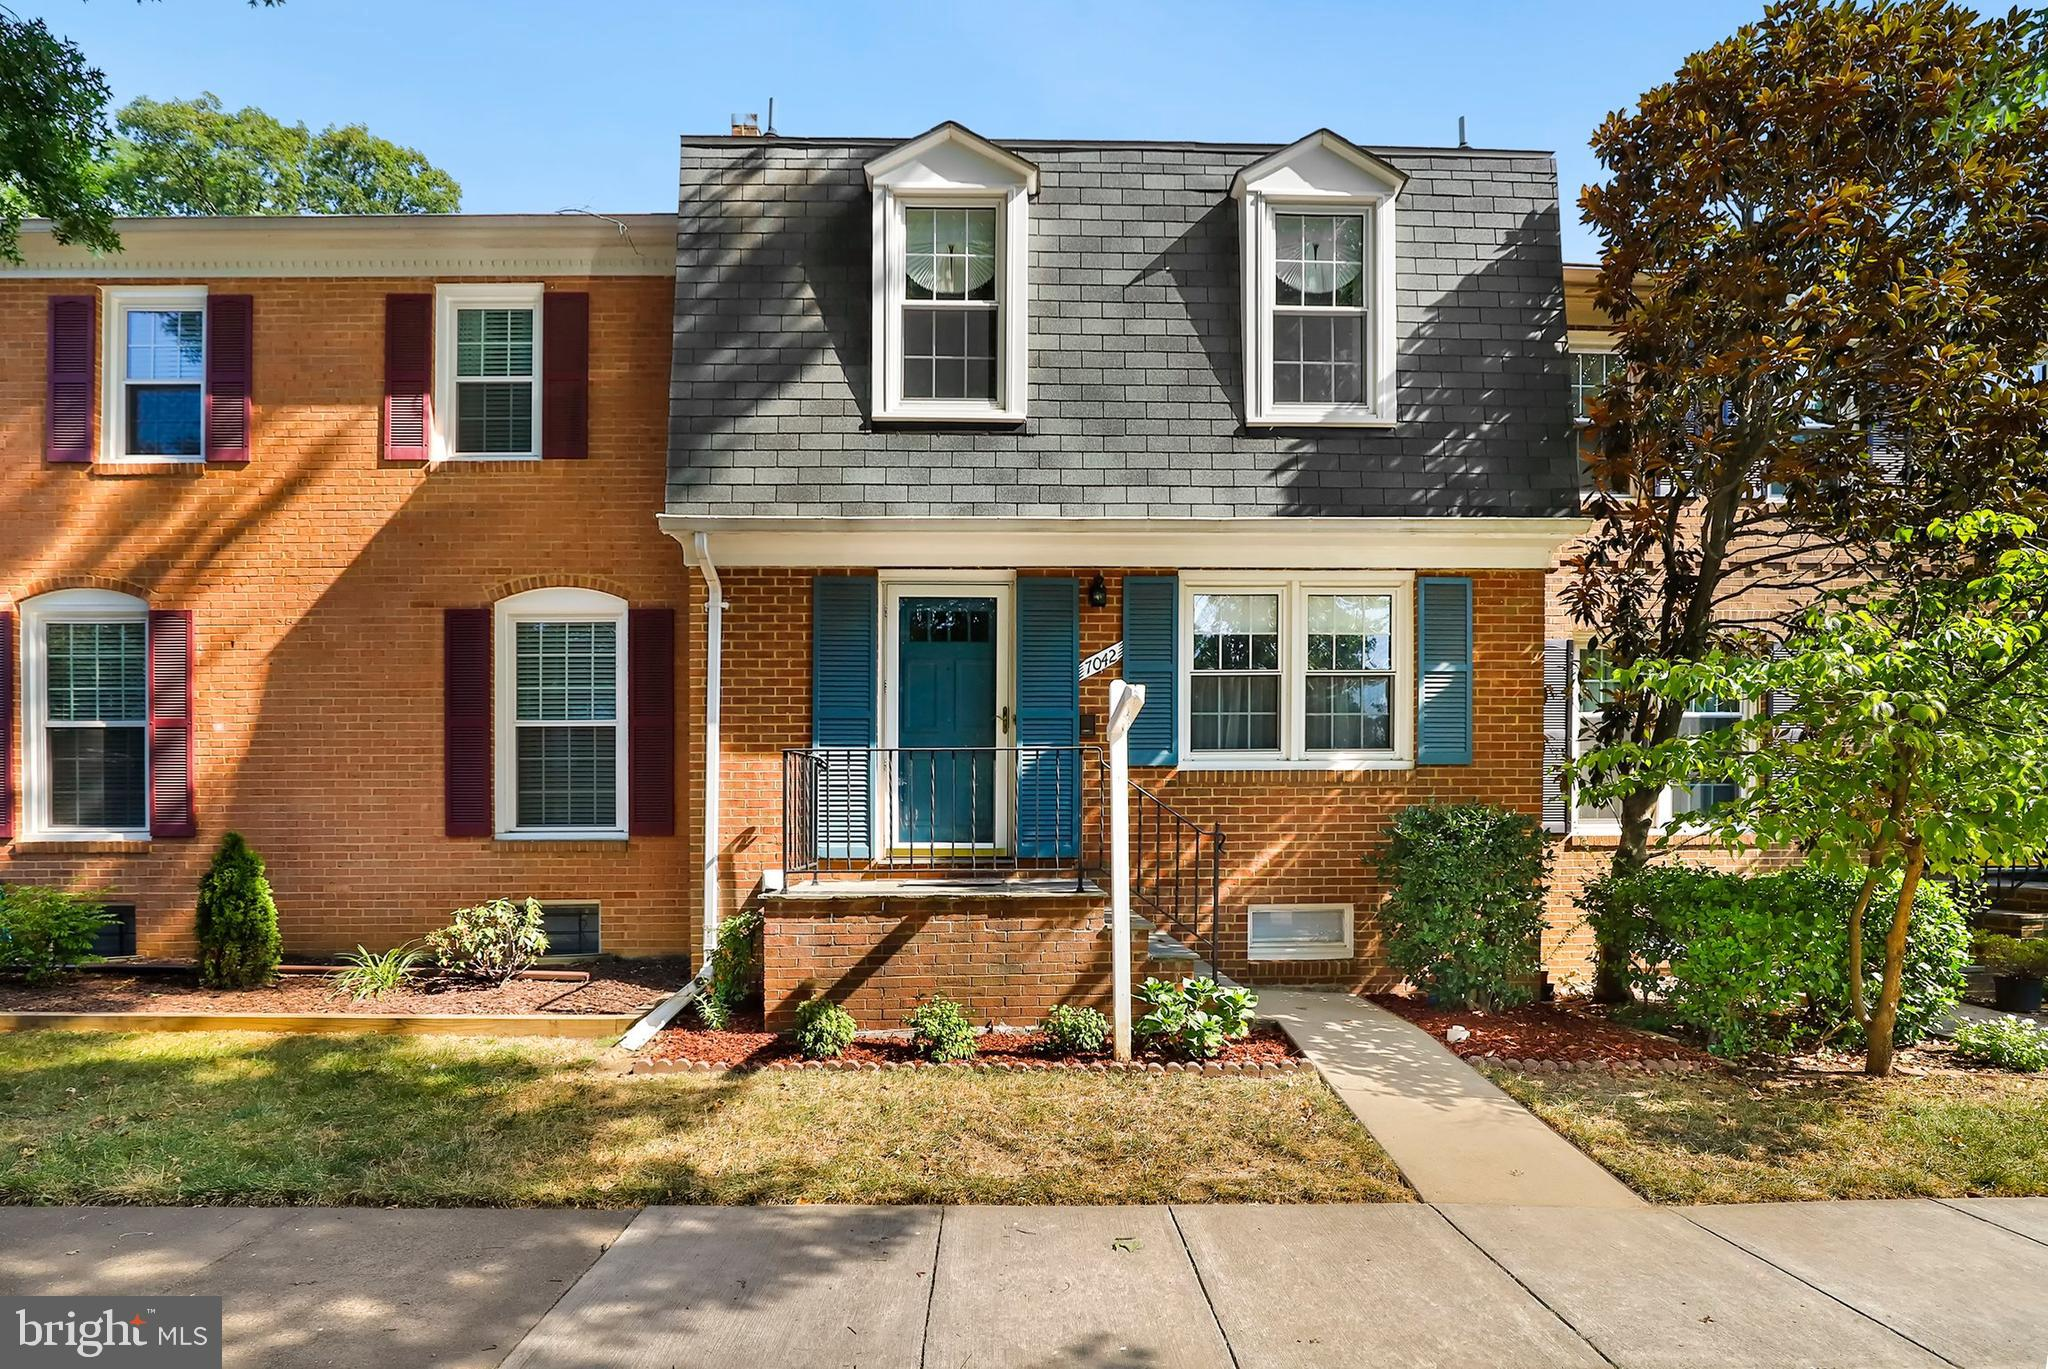 Welcome home to this light and bright townhome located minutes from I-495, Springfield Mall, and the VRE.  This home is full of updates including a new water heater, HVAC, and electrical panel.  Other features include newer windows and a deck that backs to a community area.  You are sure to love the hardwood floors that flow through the main and upper levels.  You don't want to miss out on this opportunity!